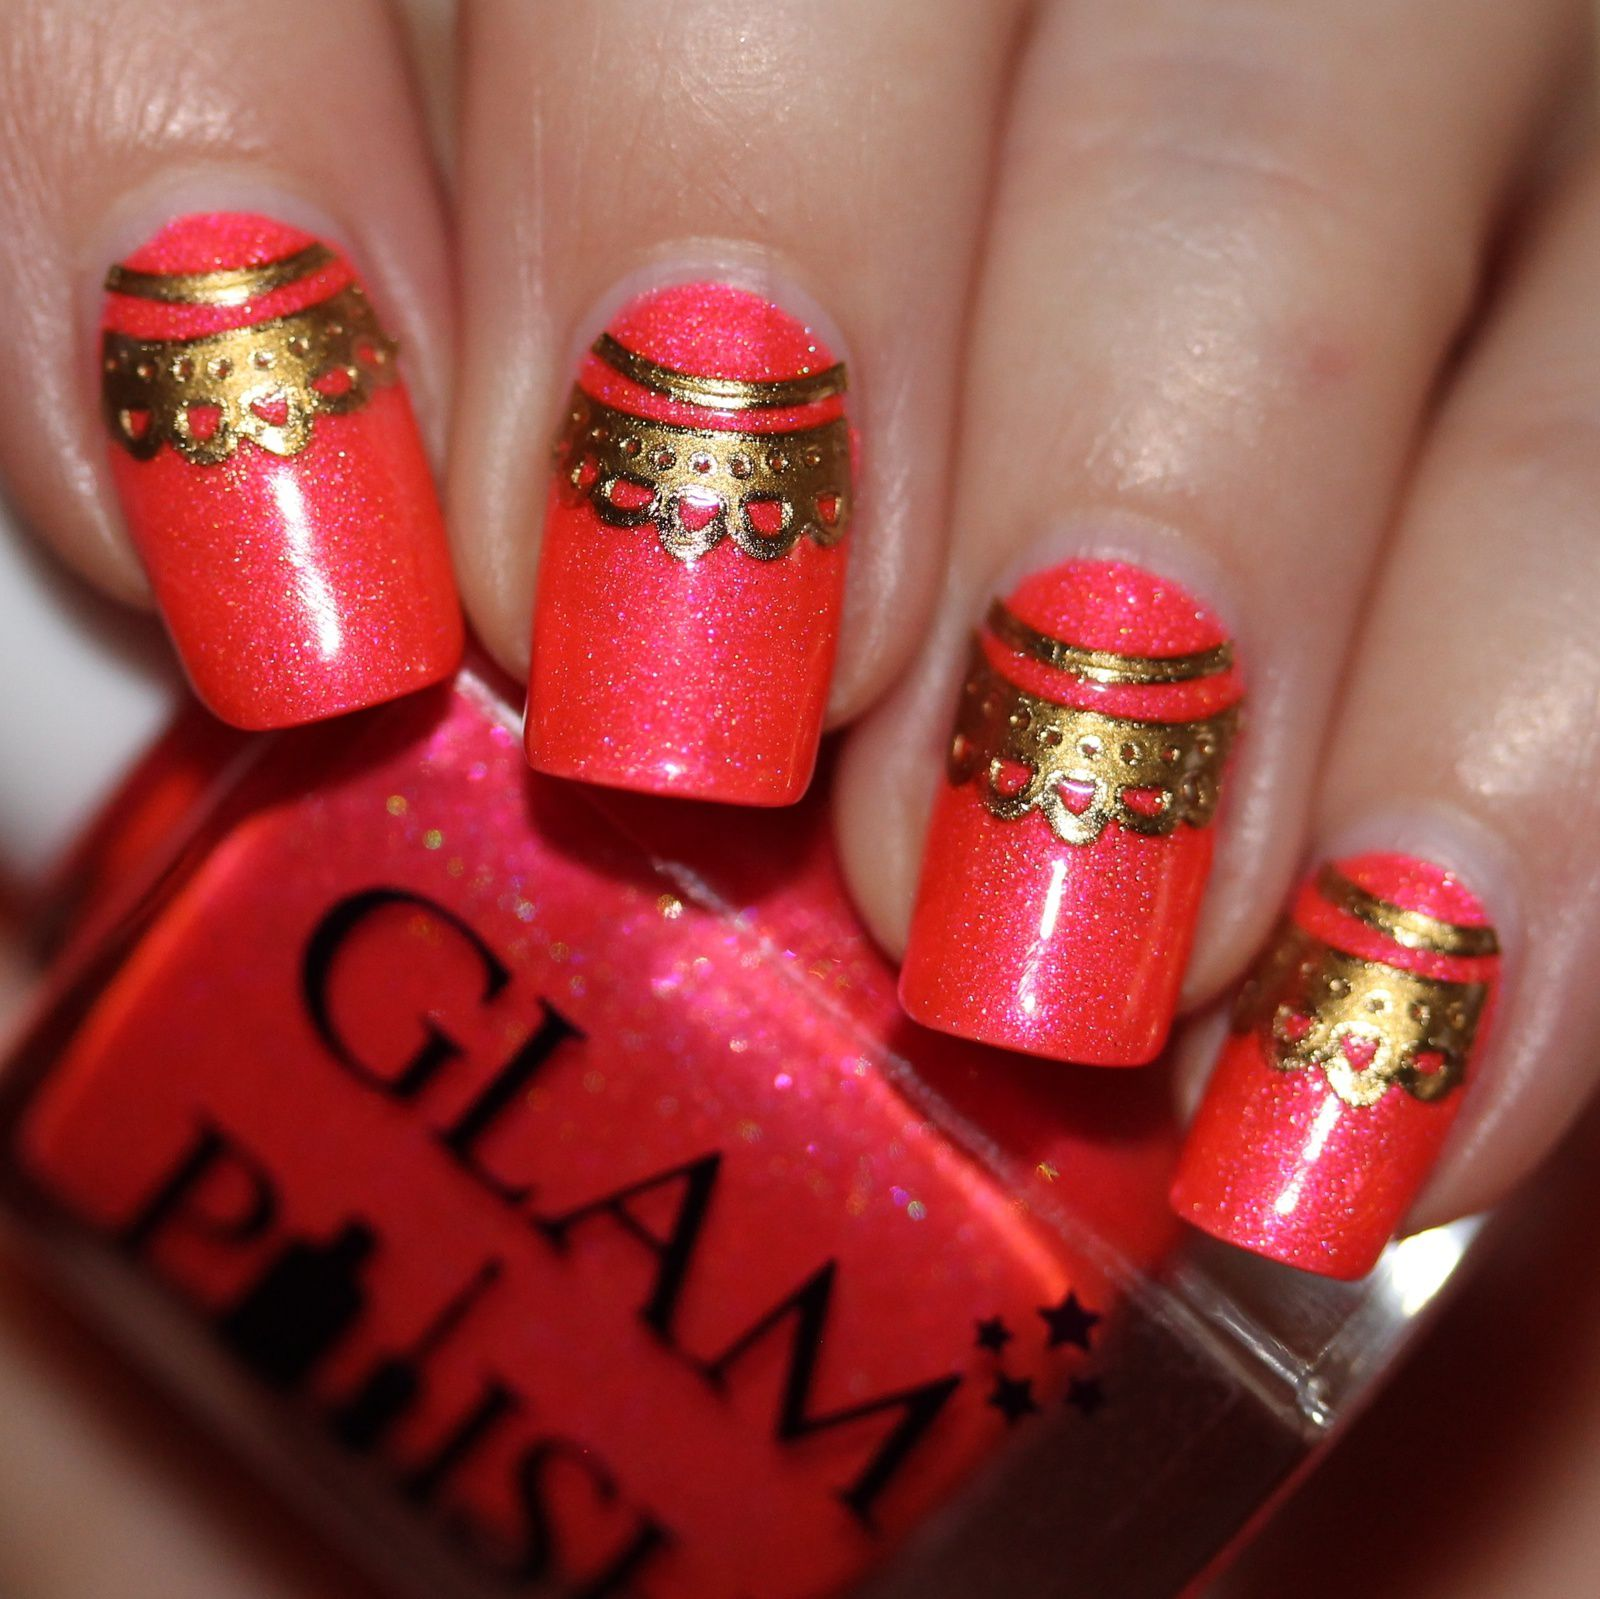 Sally Hansen Complete Care 4-in-1 Extra Moisturizing Nail Treatment / Glam Polish Hopelessly Devoted / Golden Lace Stickers / HK Girl Top Coat